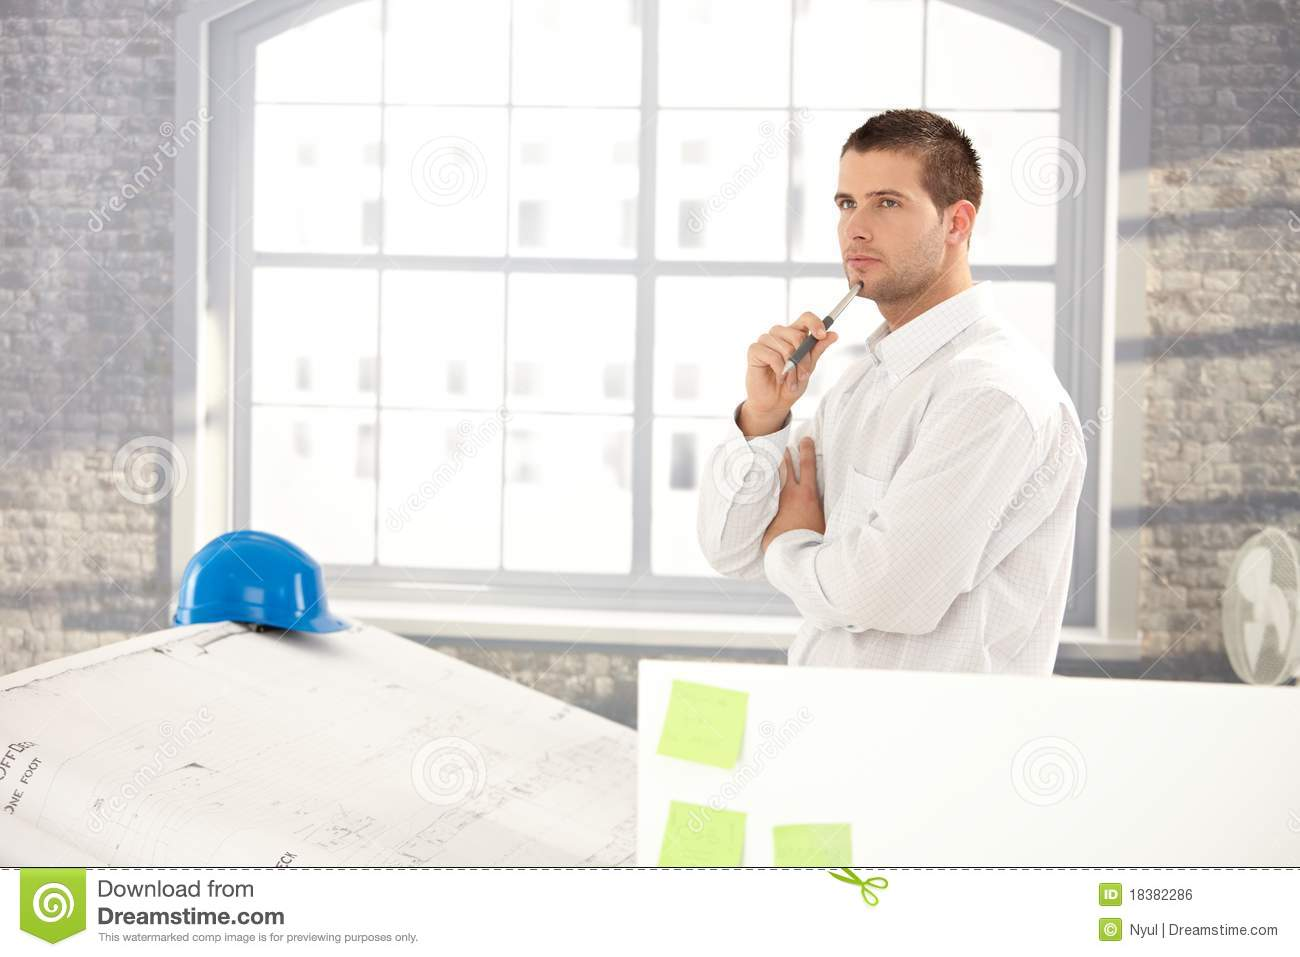 Goodlooking Architect Making Plans Royalty Free Stock Image - Image ...